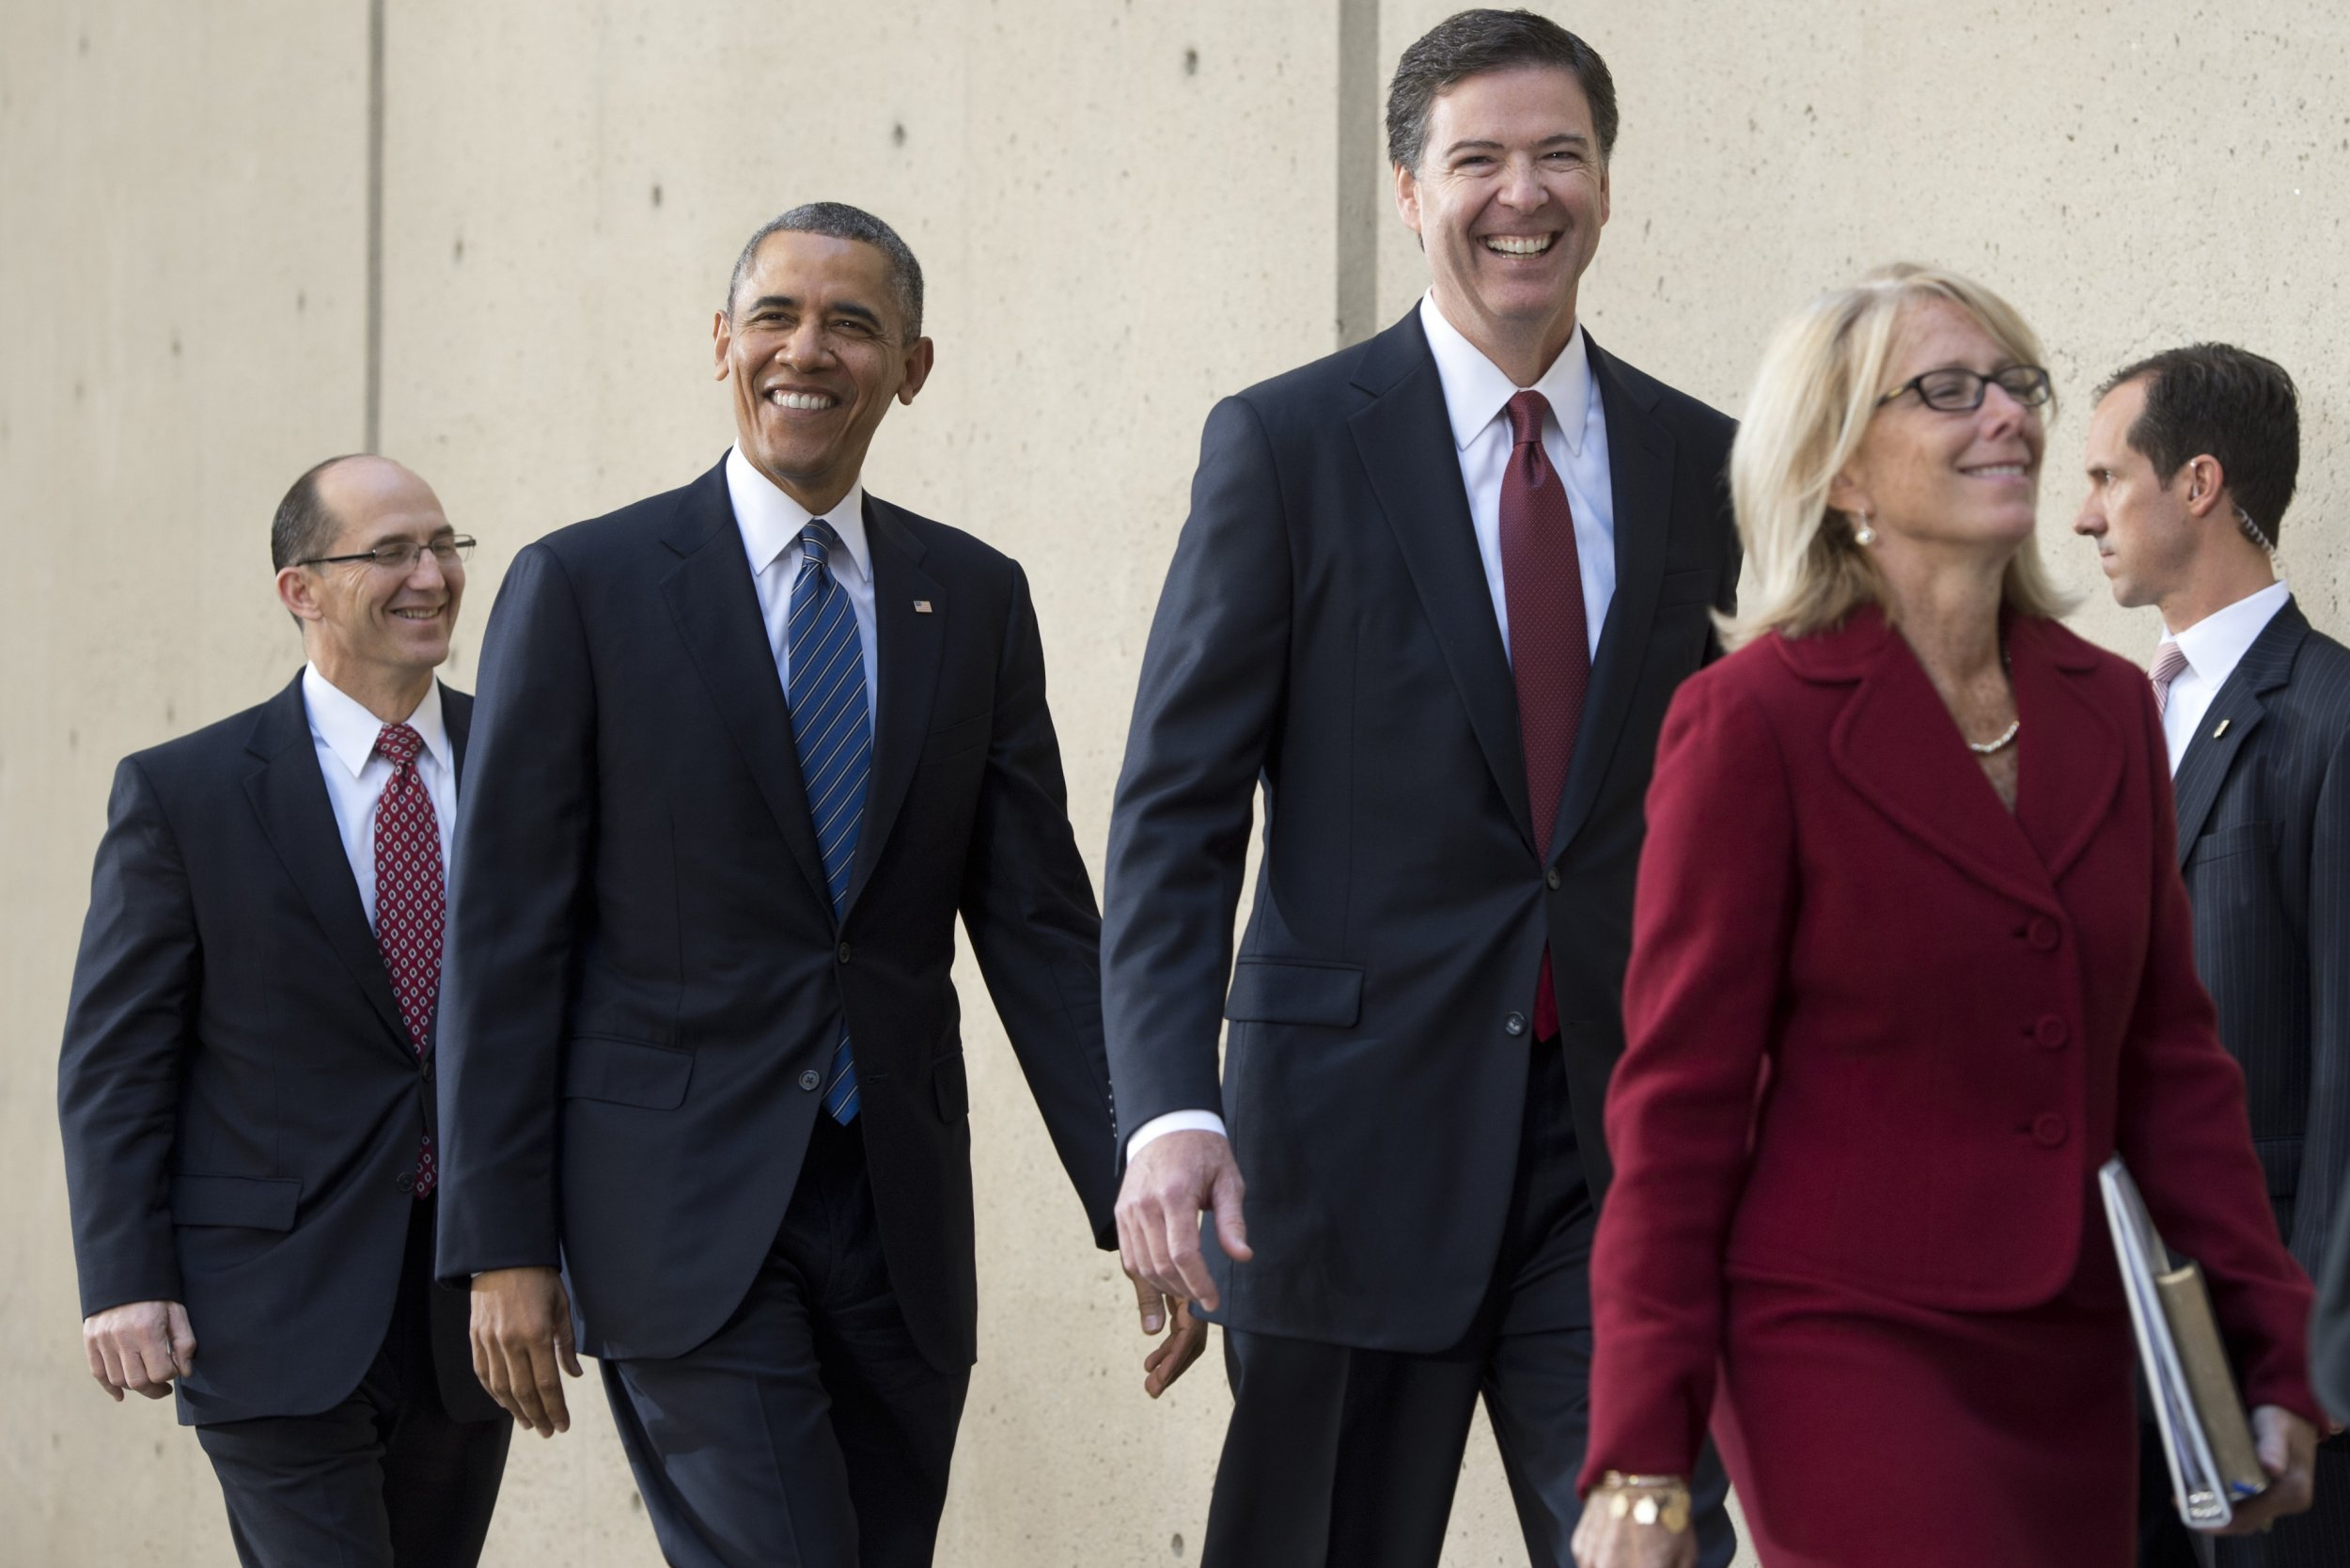 james comey public outing